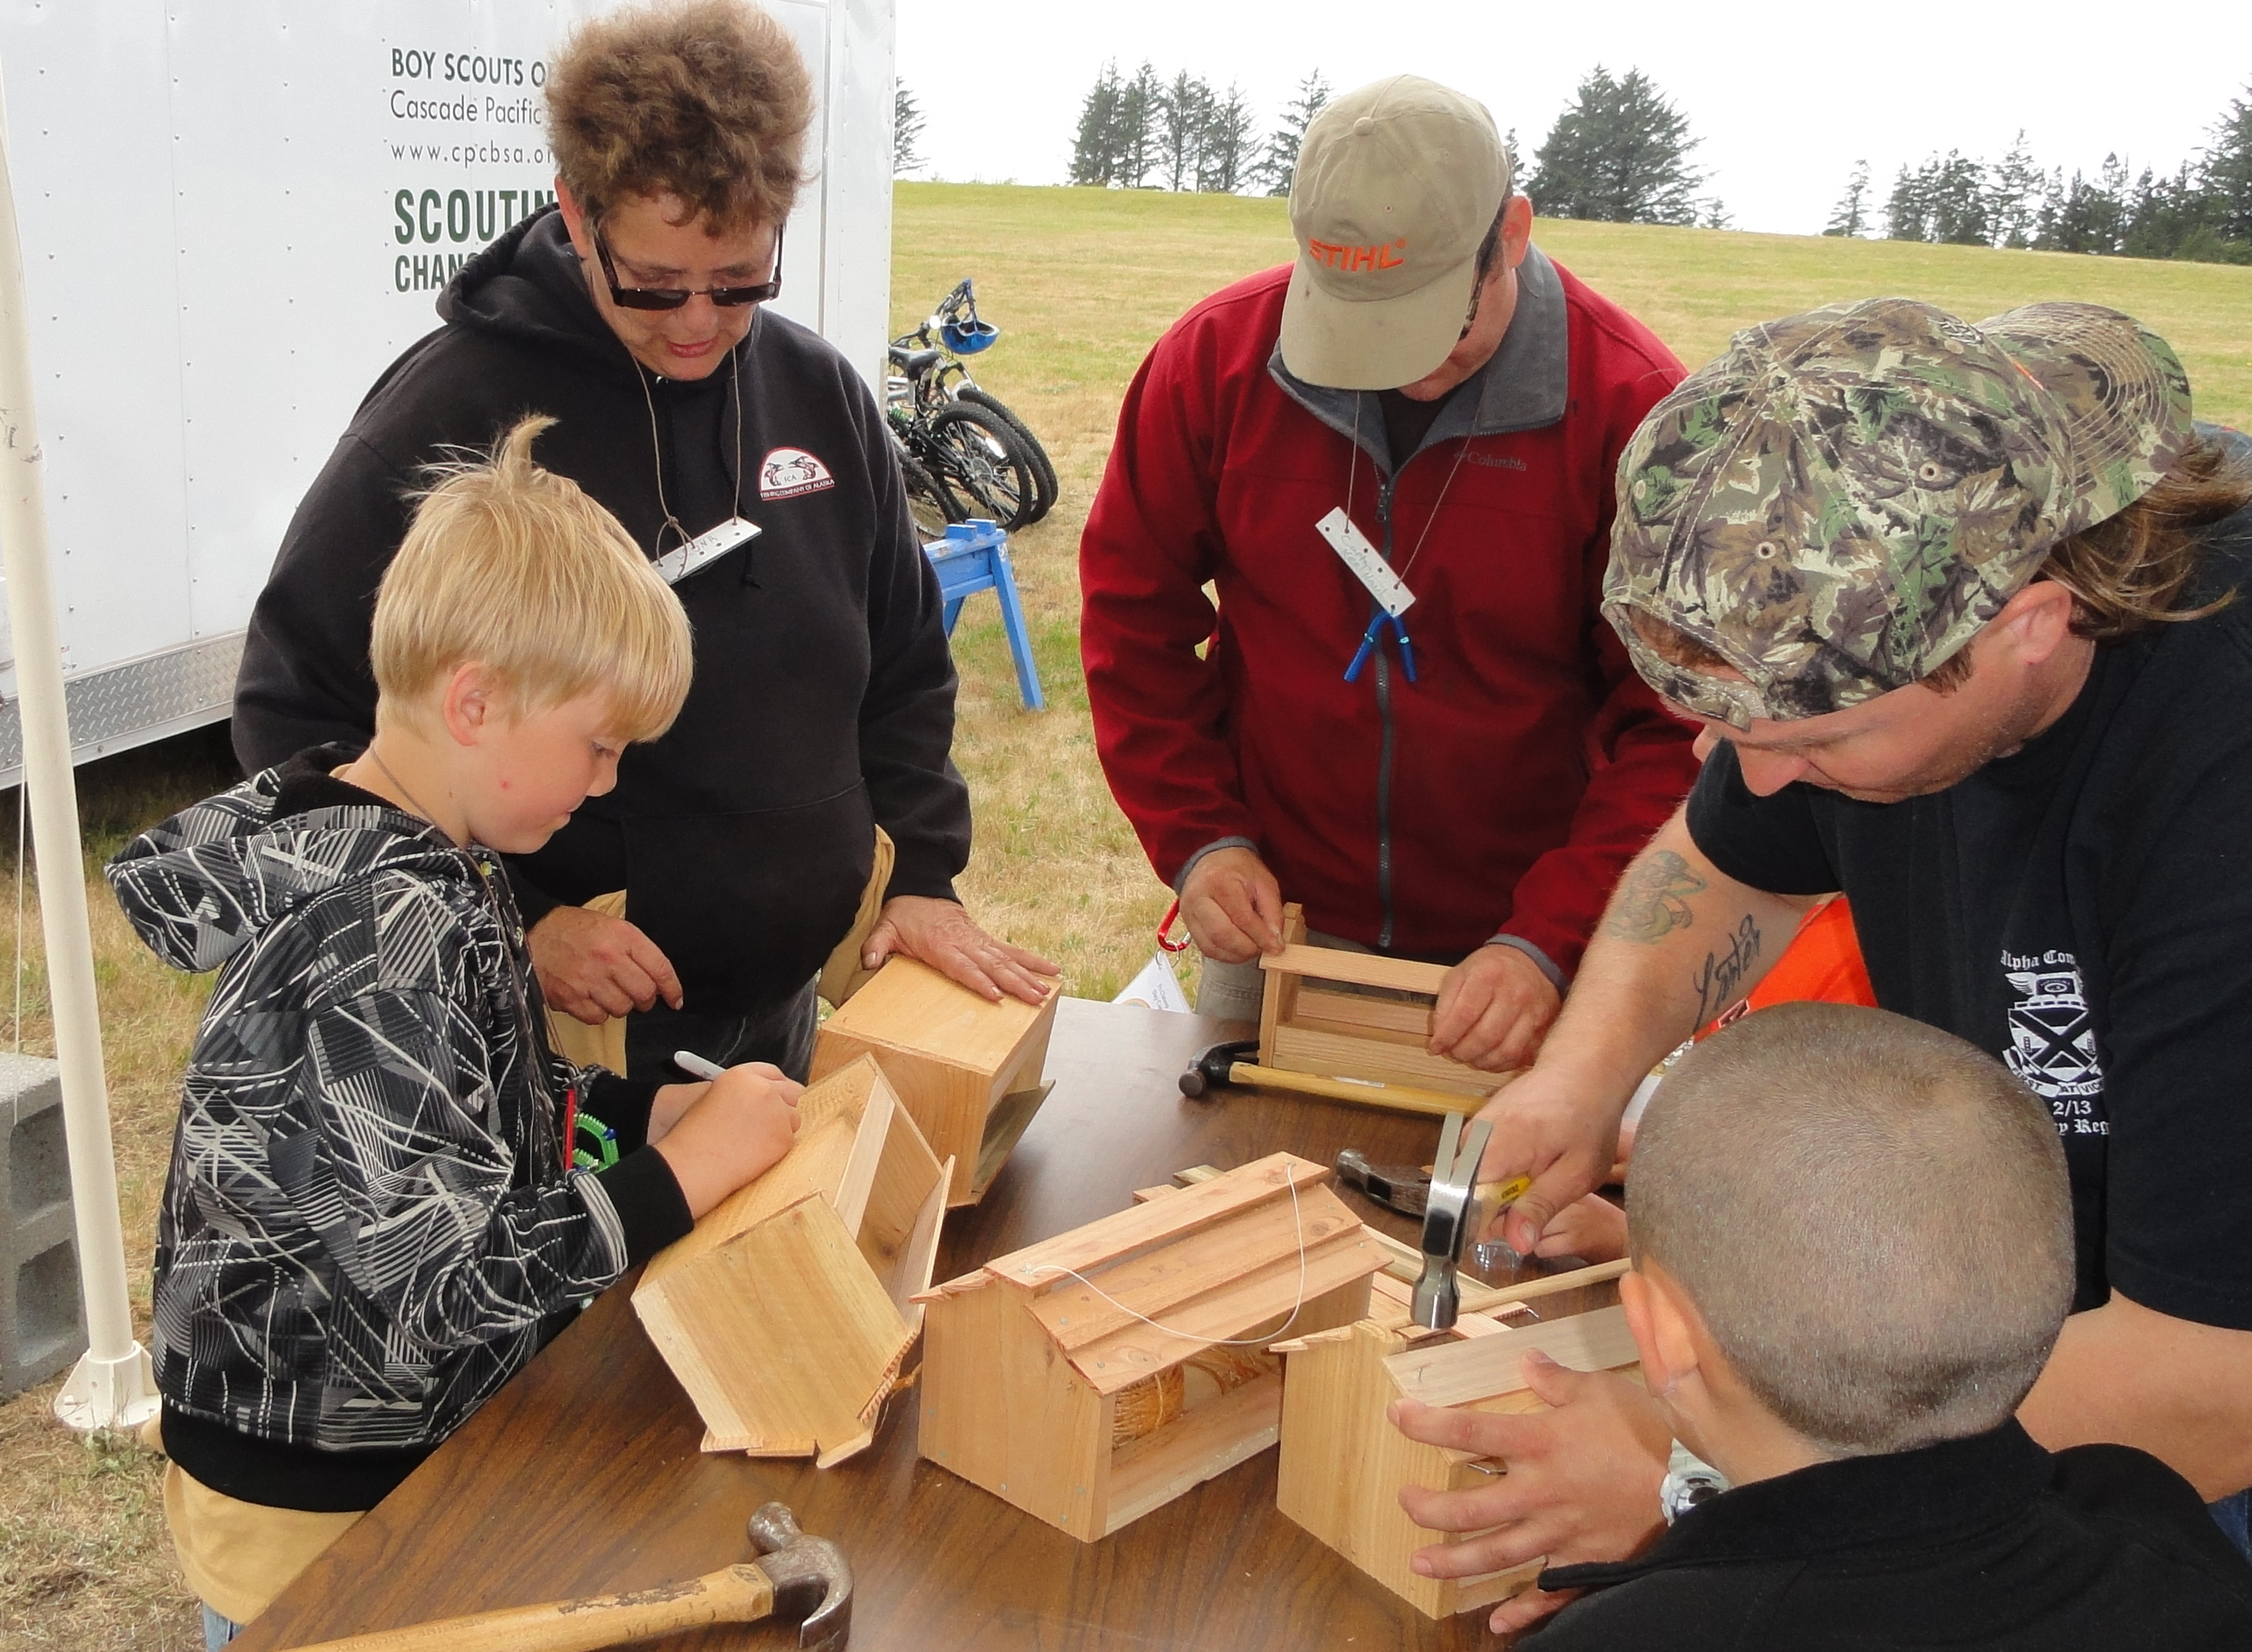 Simple Wood Projects For Cub Scouts